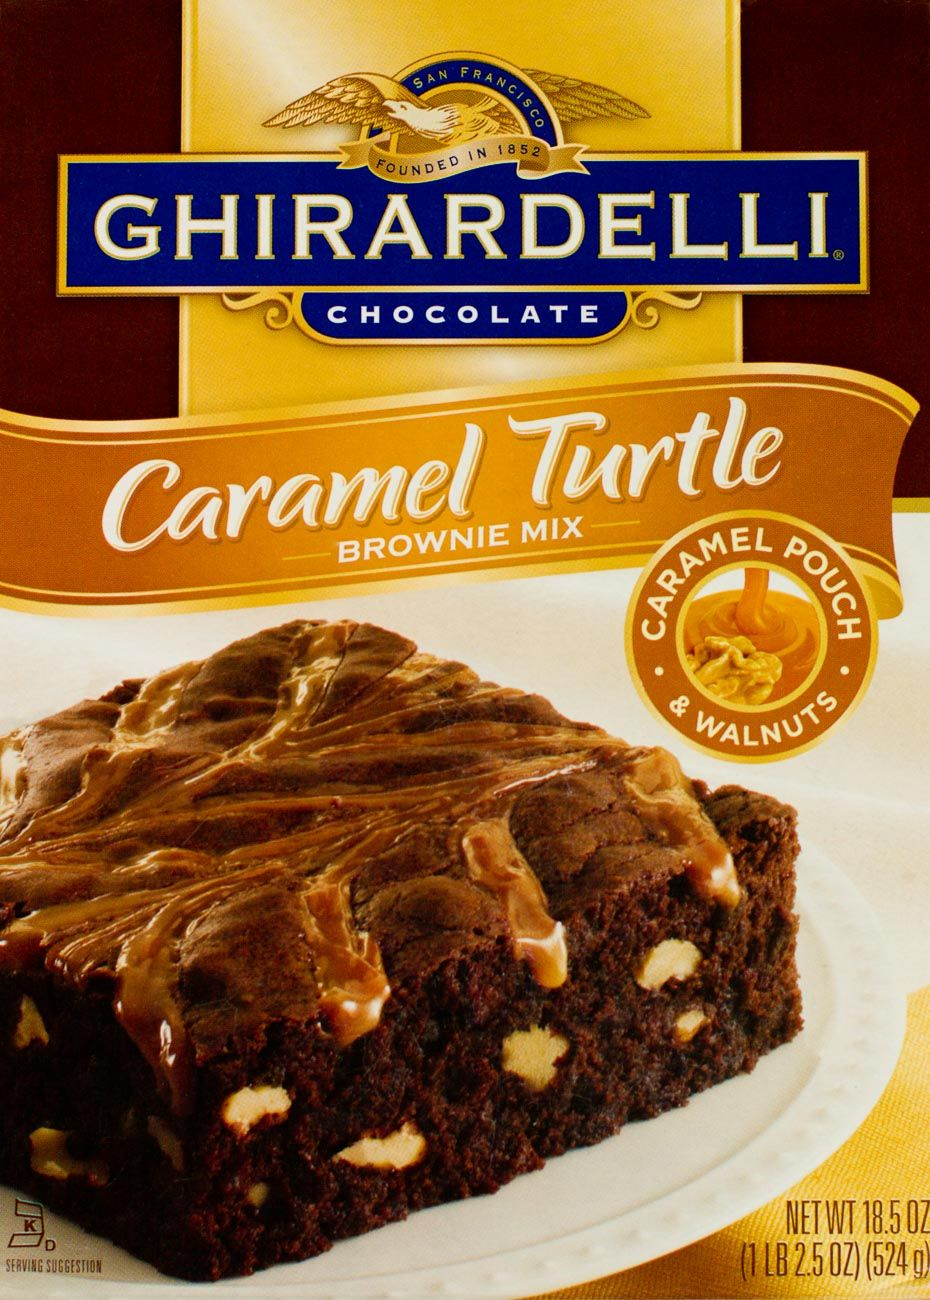 Ghirardelli-chocolate-brownies-food-stylist-San-Francisco.jpg